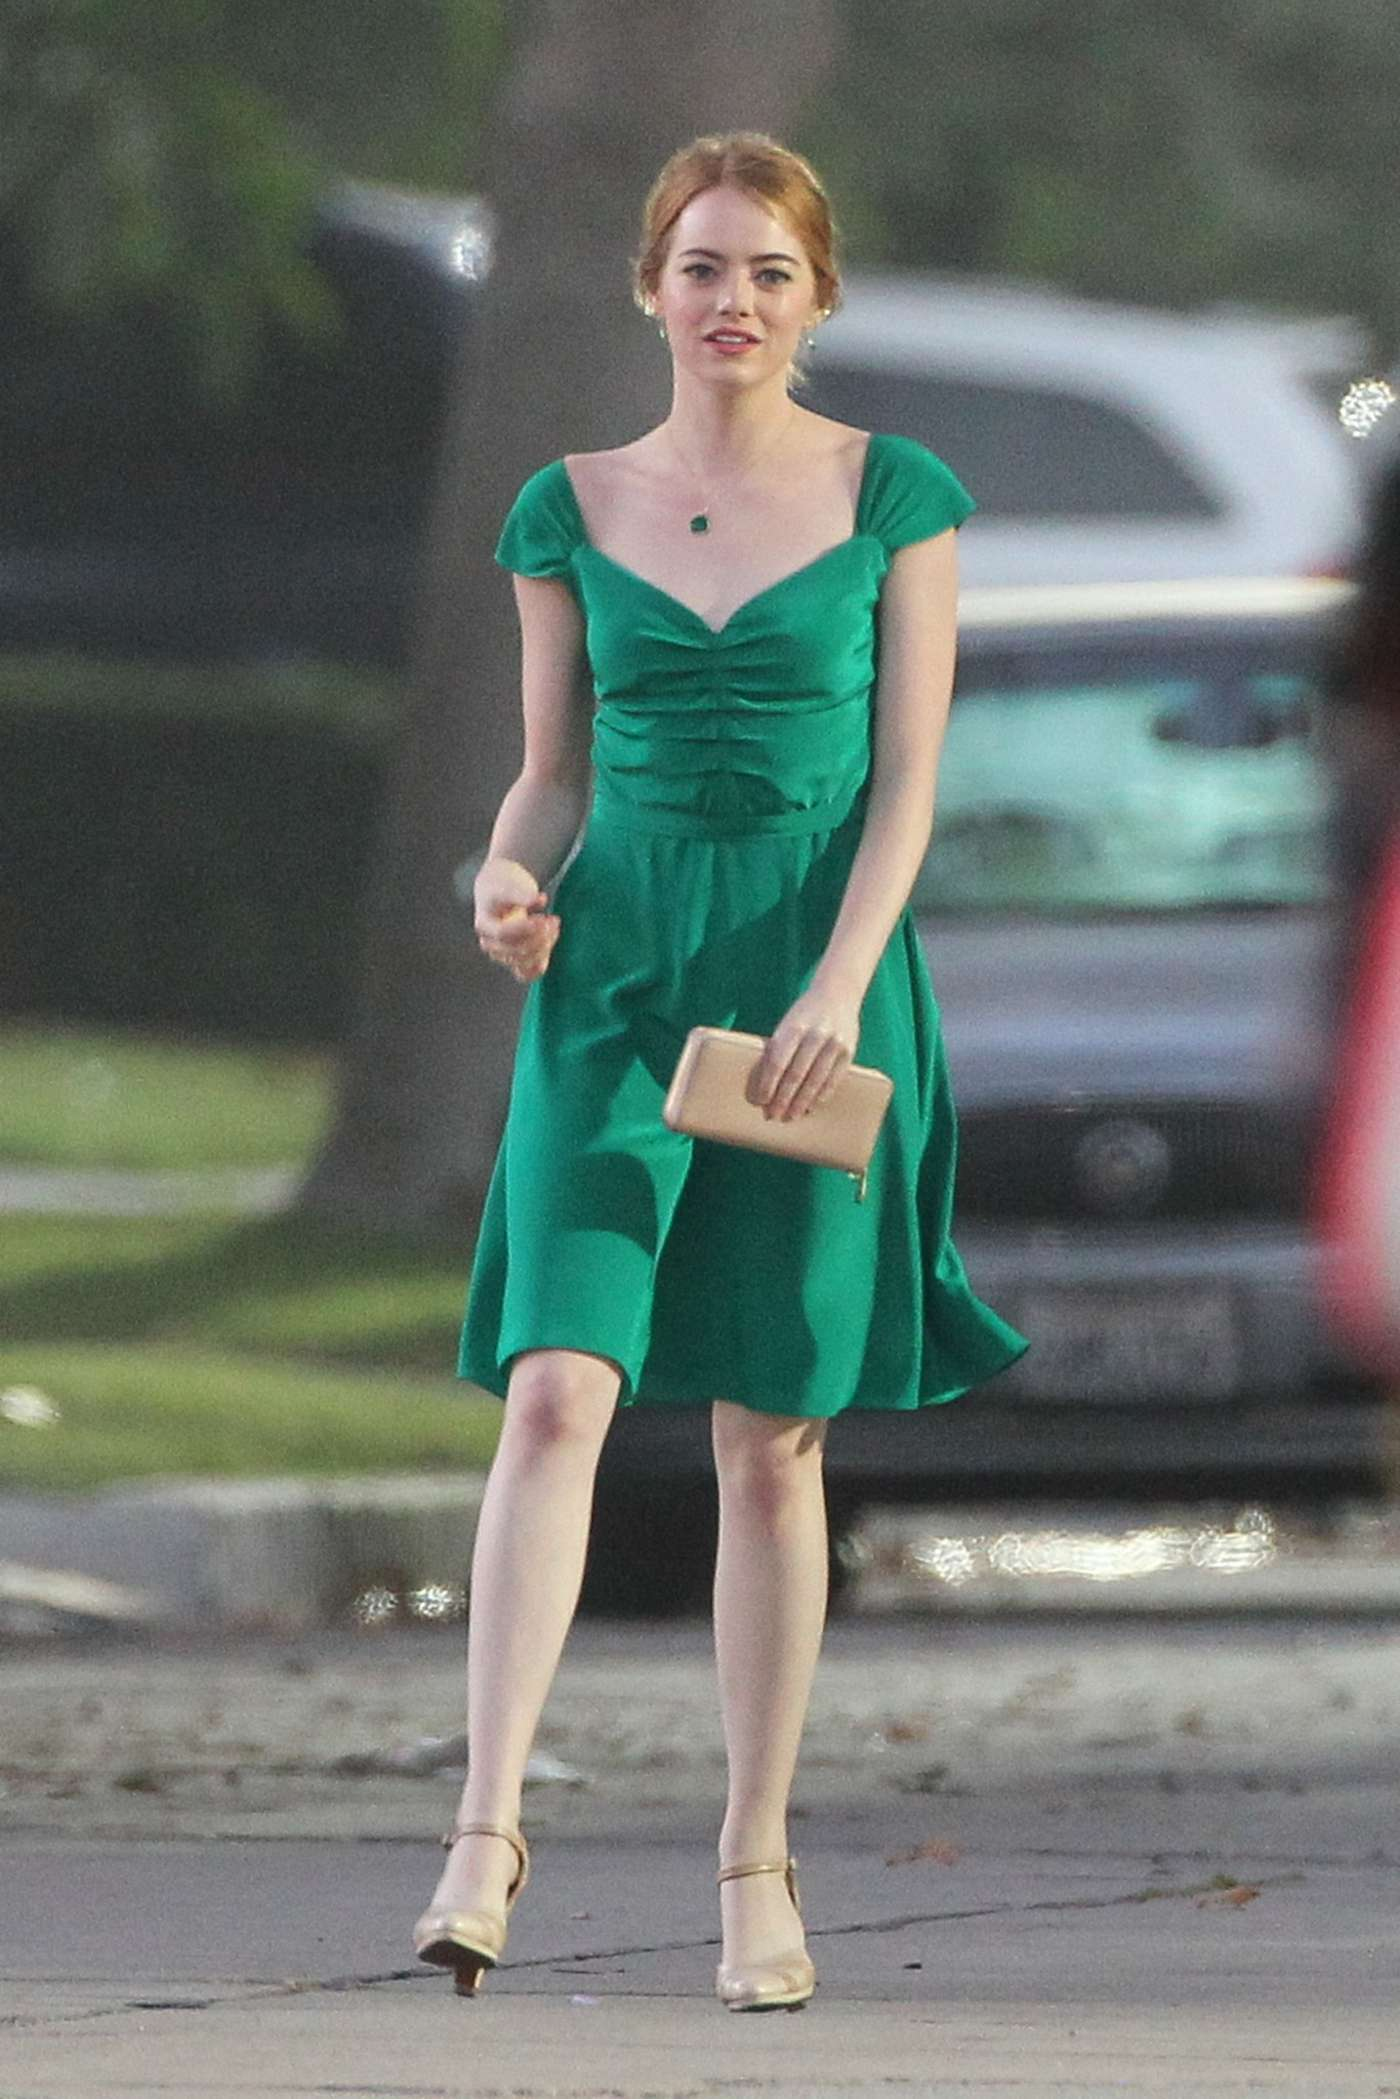 https://www.gotceleb.com/wp-content/uploads/photos/emma-stone/filming-la-la-land-in-los-angeles/Emma-Stone-in-Green-Dress-on-La-La-Land--03.jpg